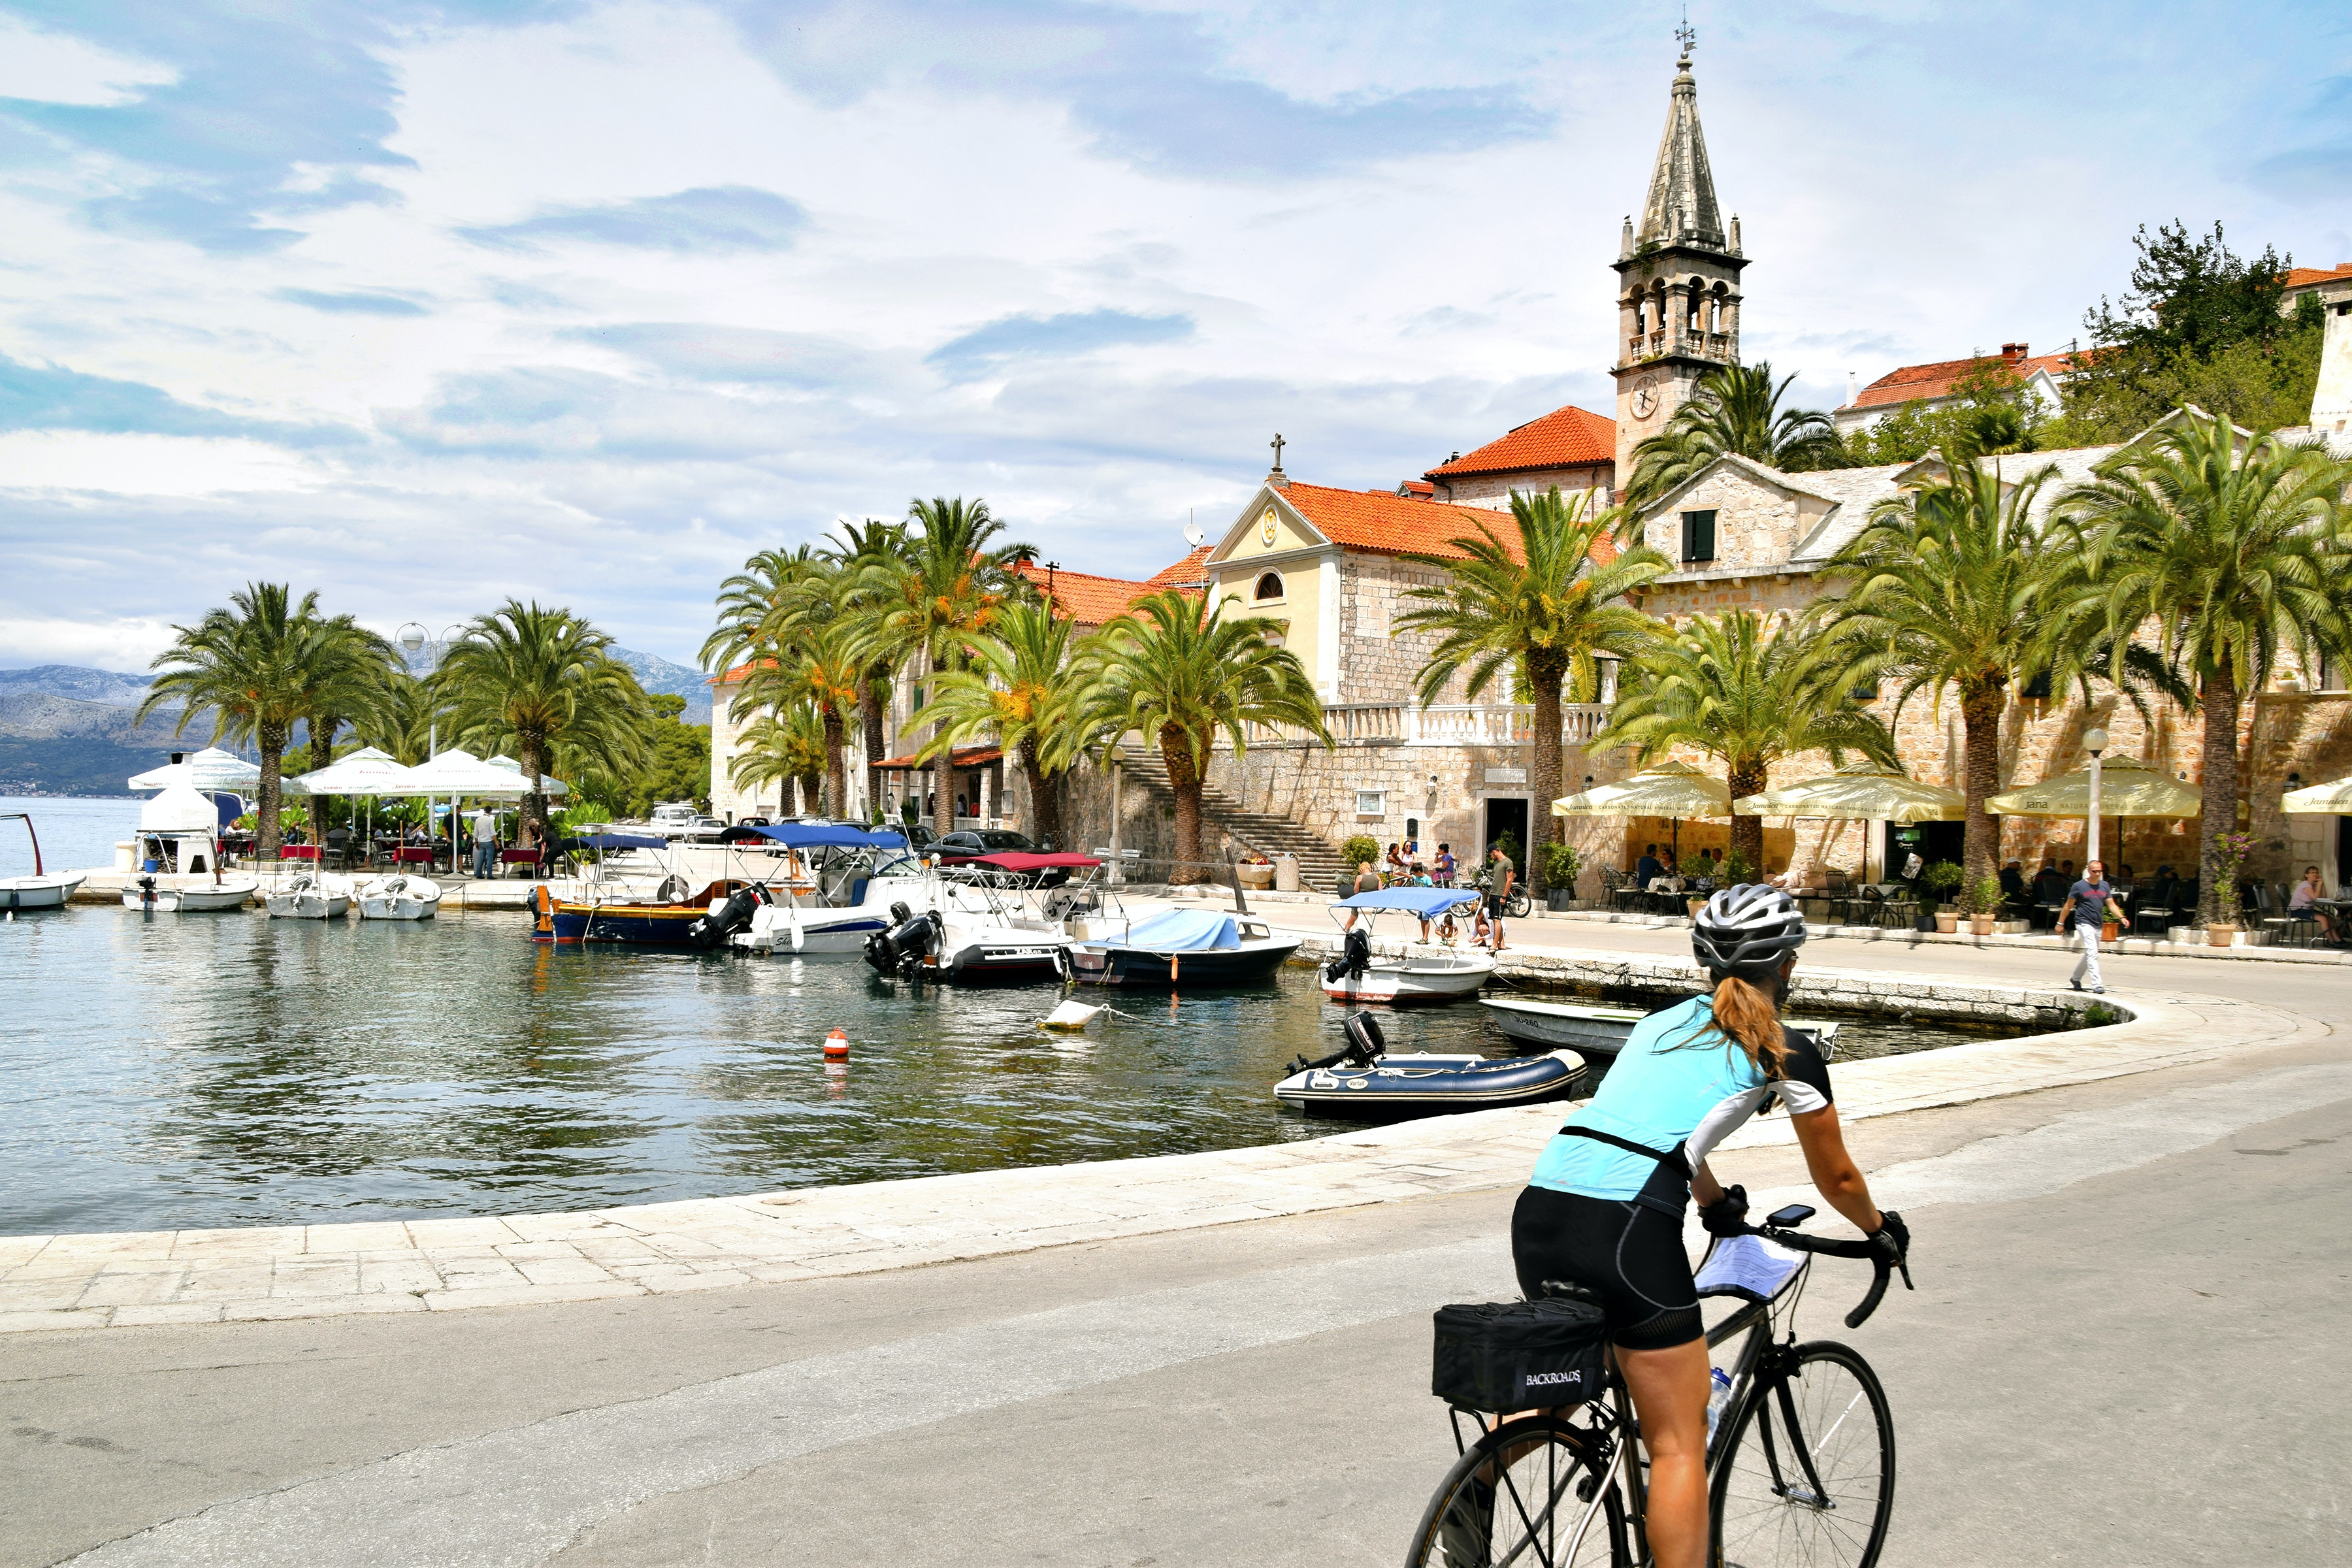 Feel the wind in your hair as you cruise through Croatia and Slovenia with Backroads.